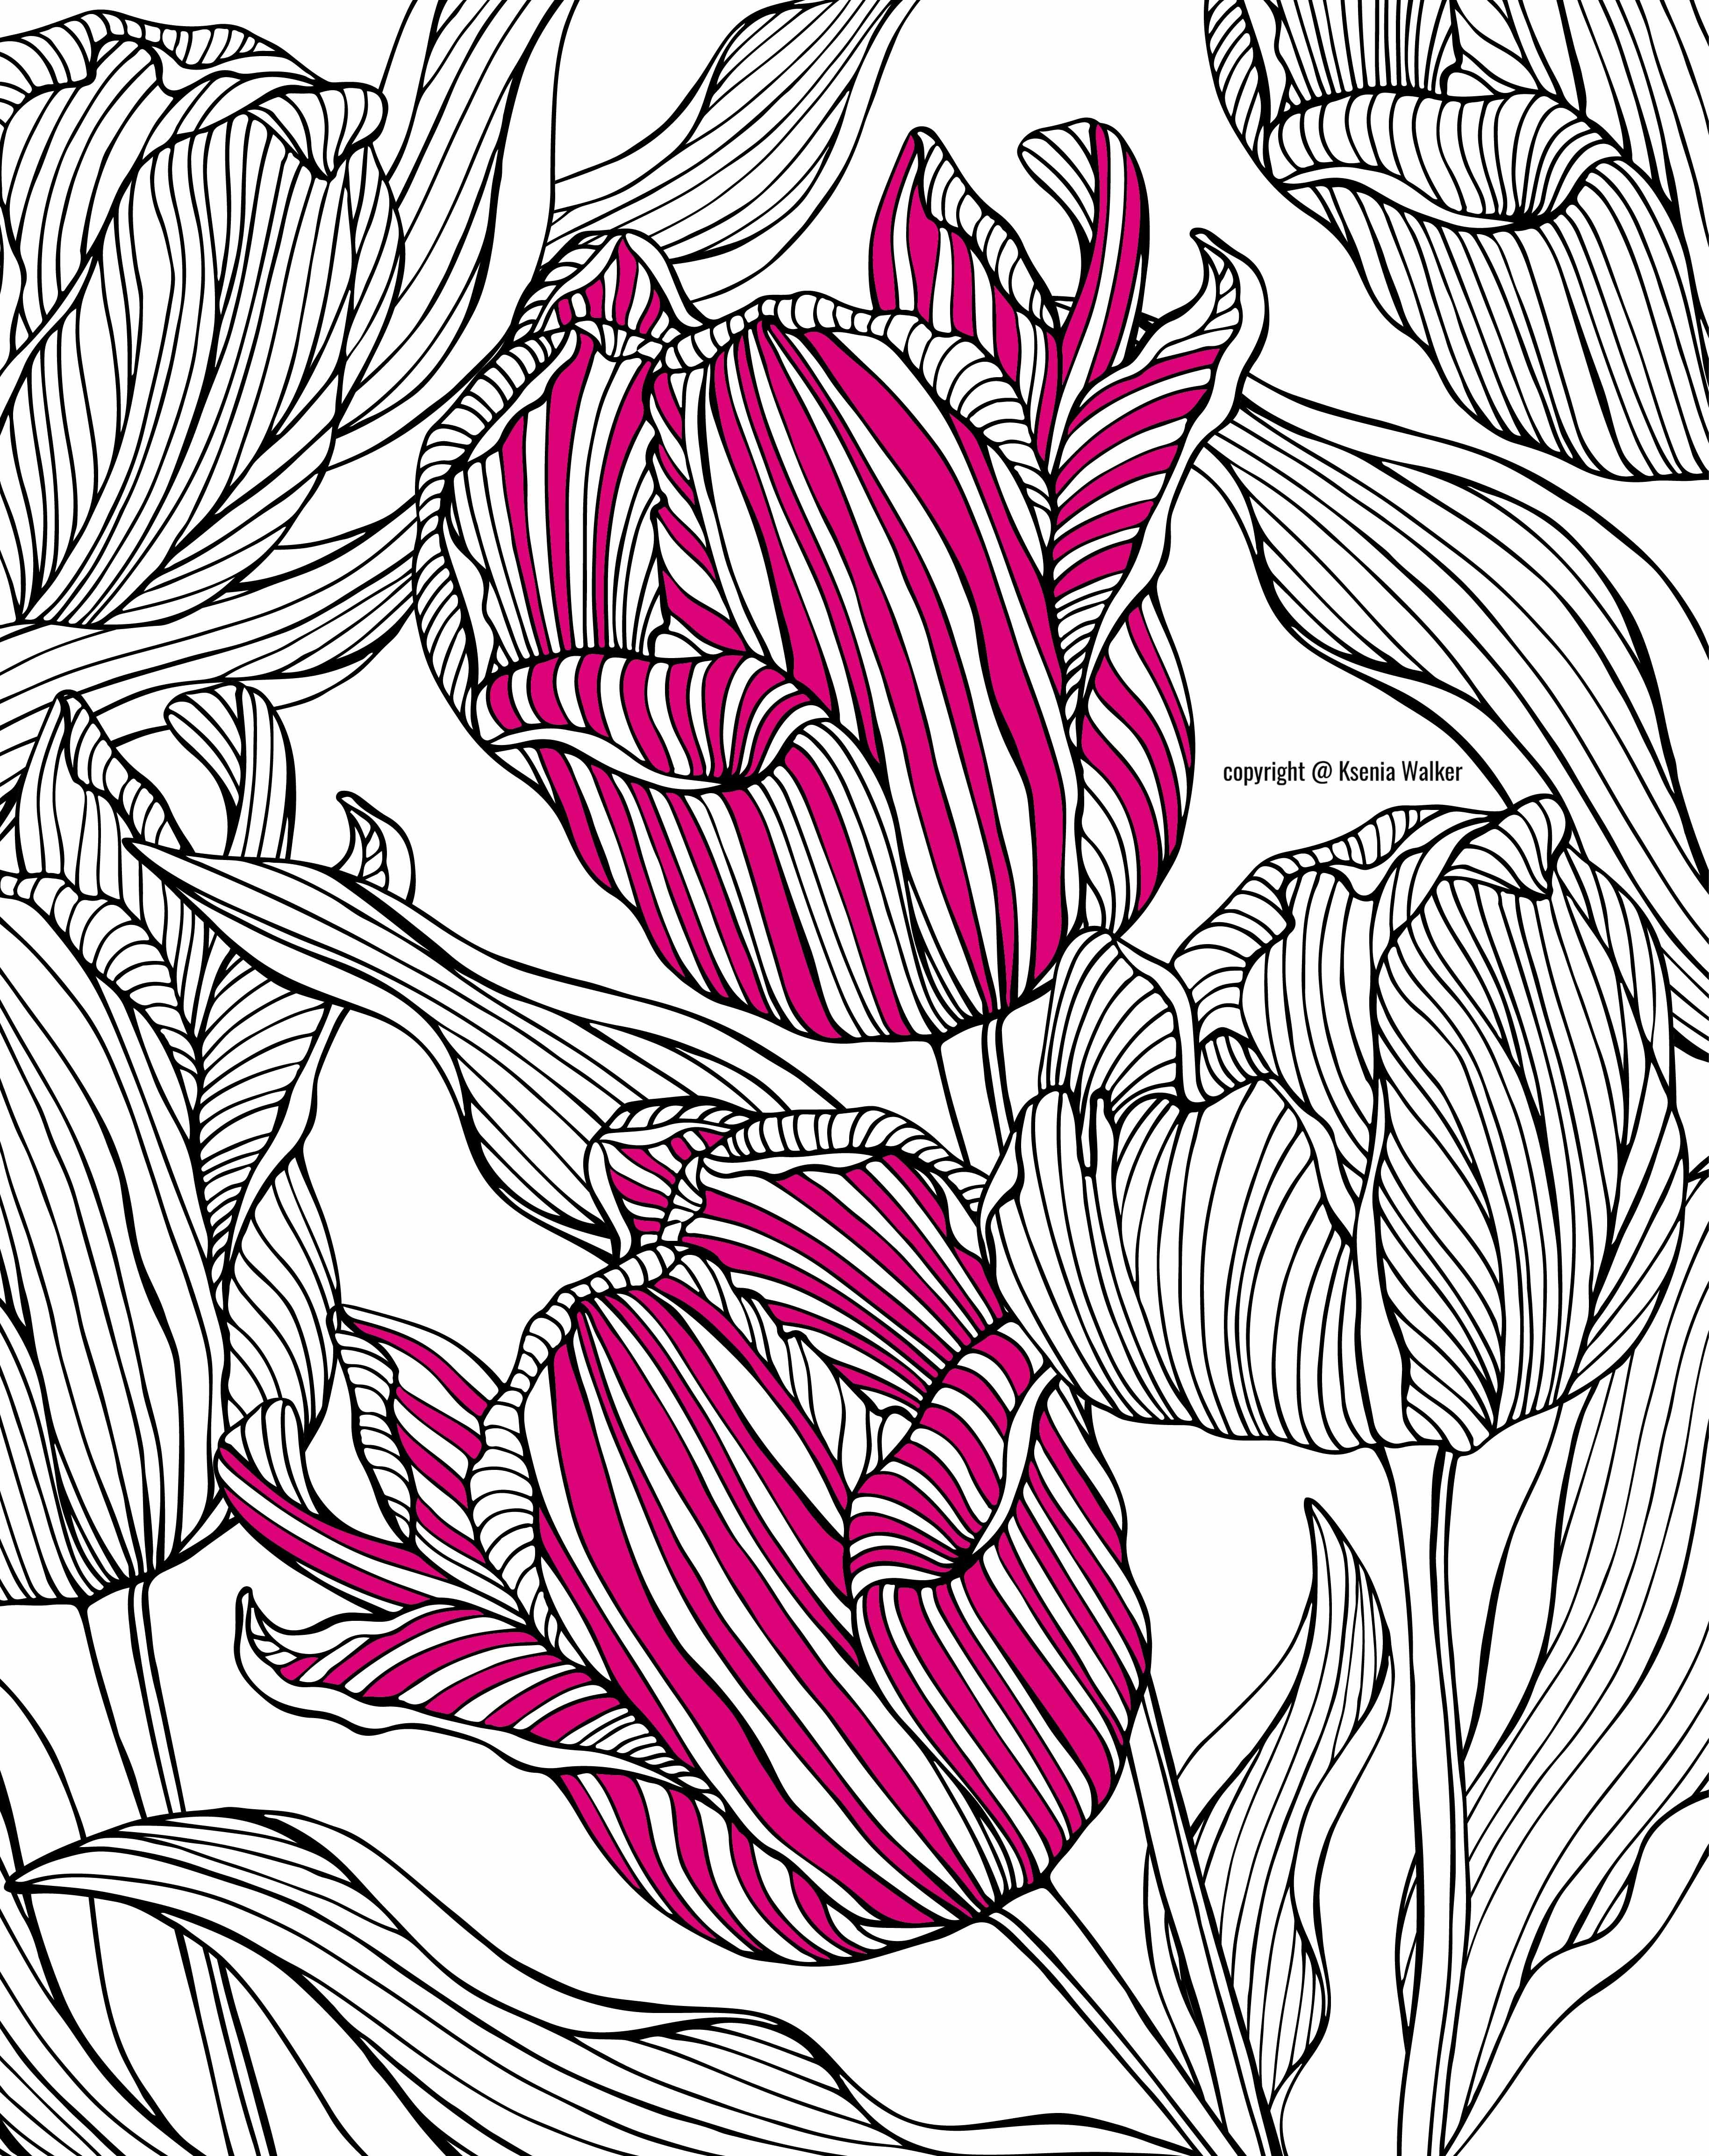 coloring book, coloring page, colouring, coloring for adults, adult ...